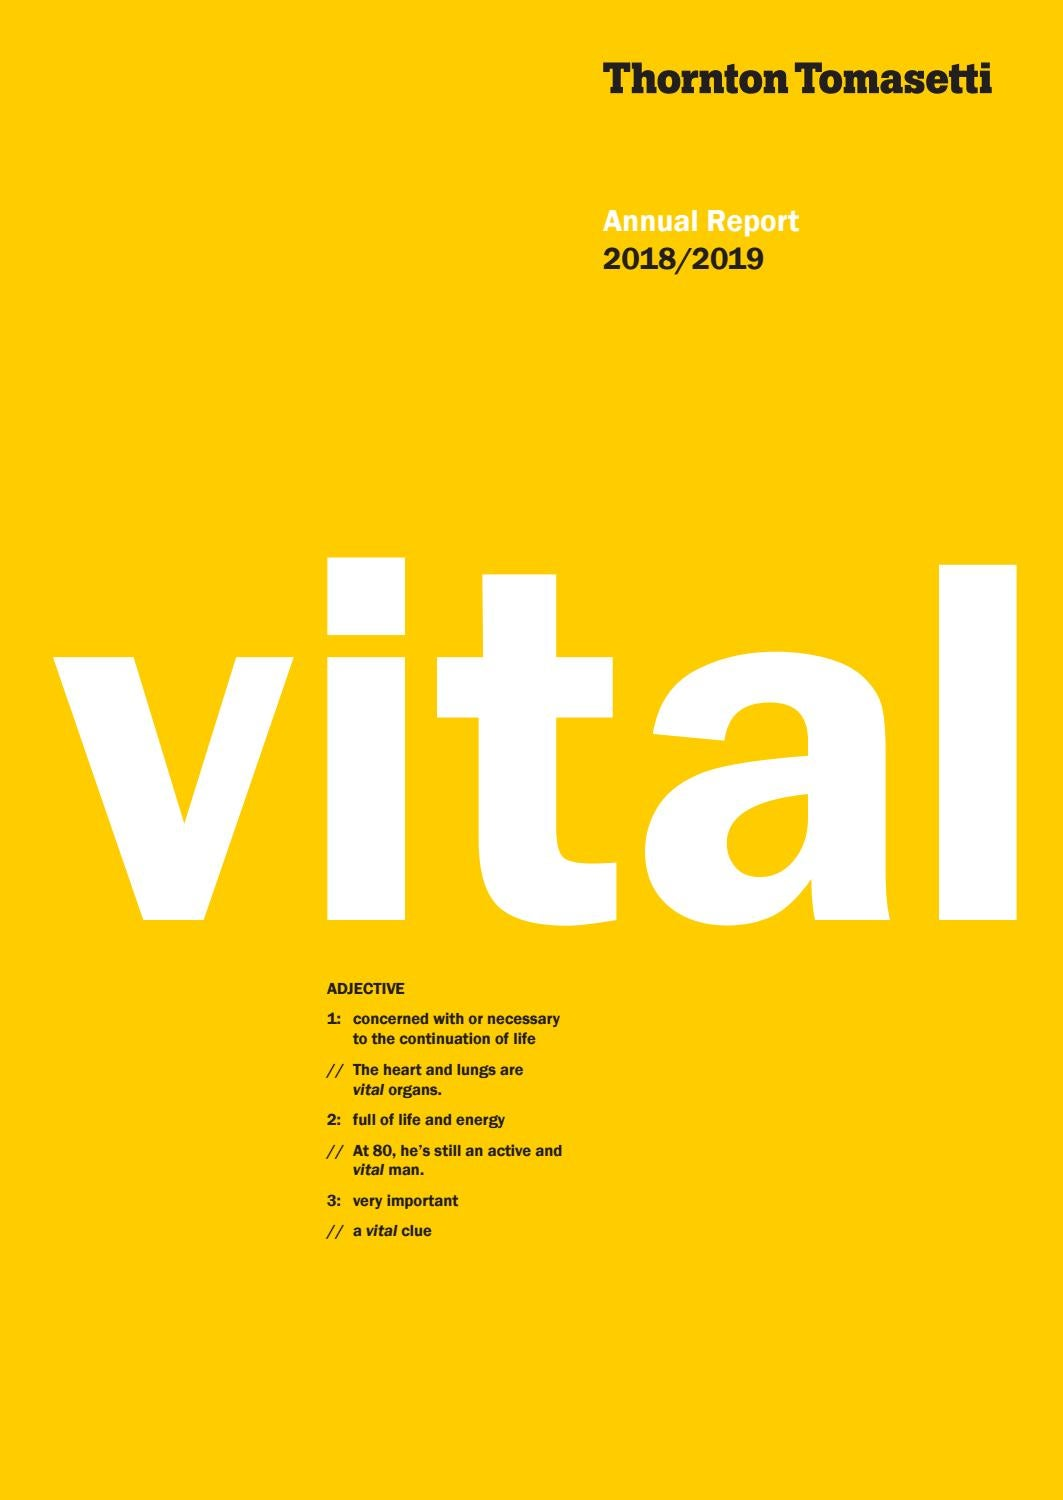 Annual Report 2018/2019: Vitality by Thornton Tomasetti - issuu